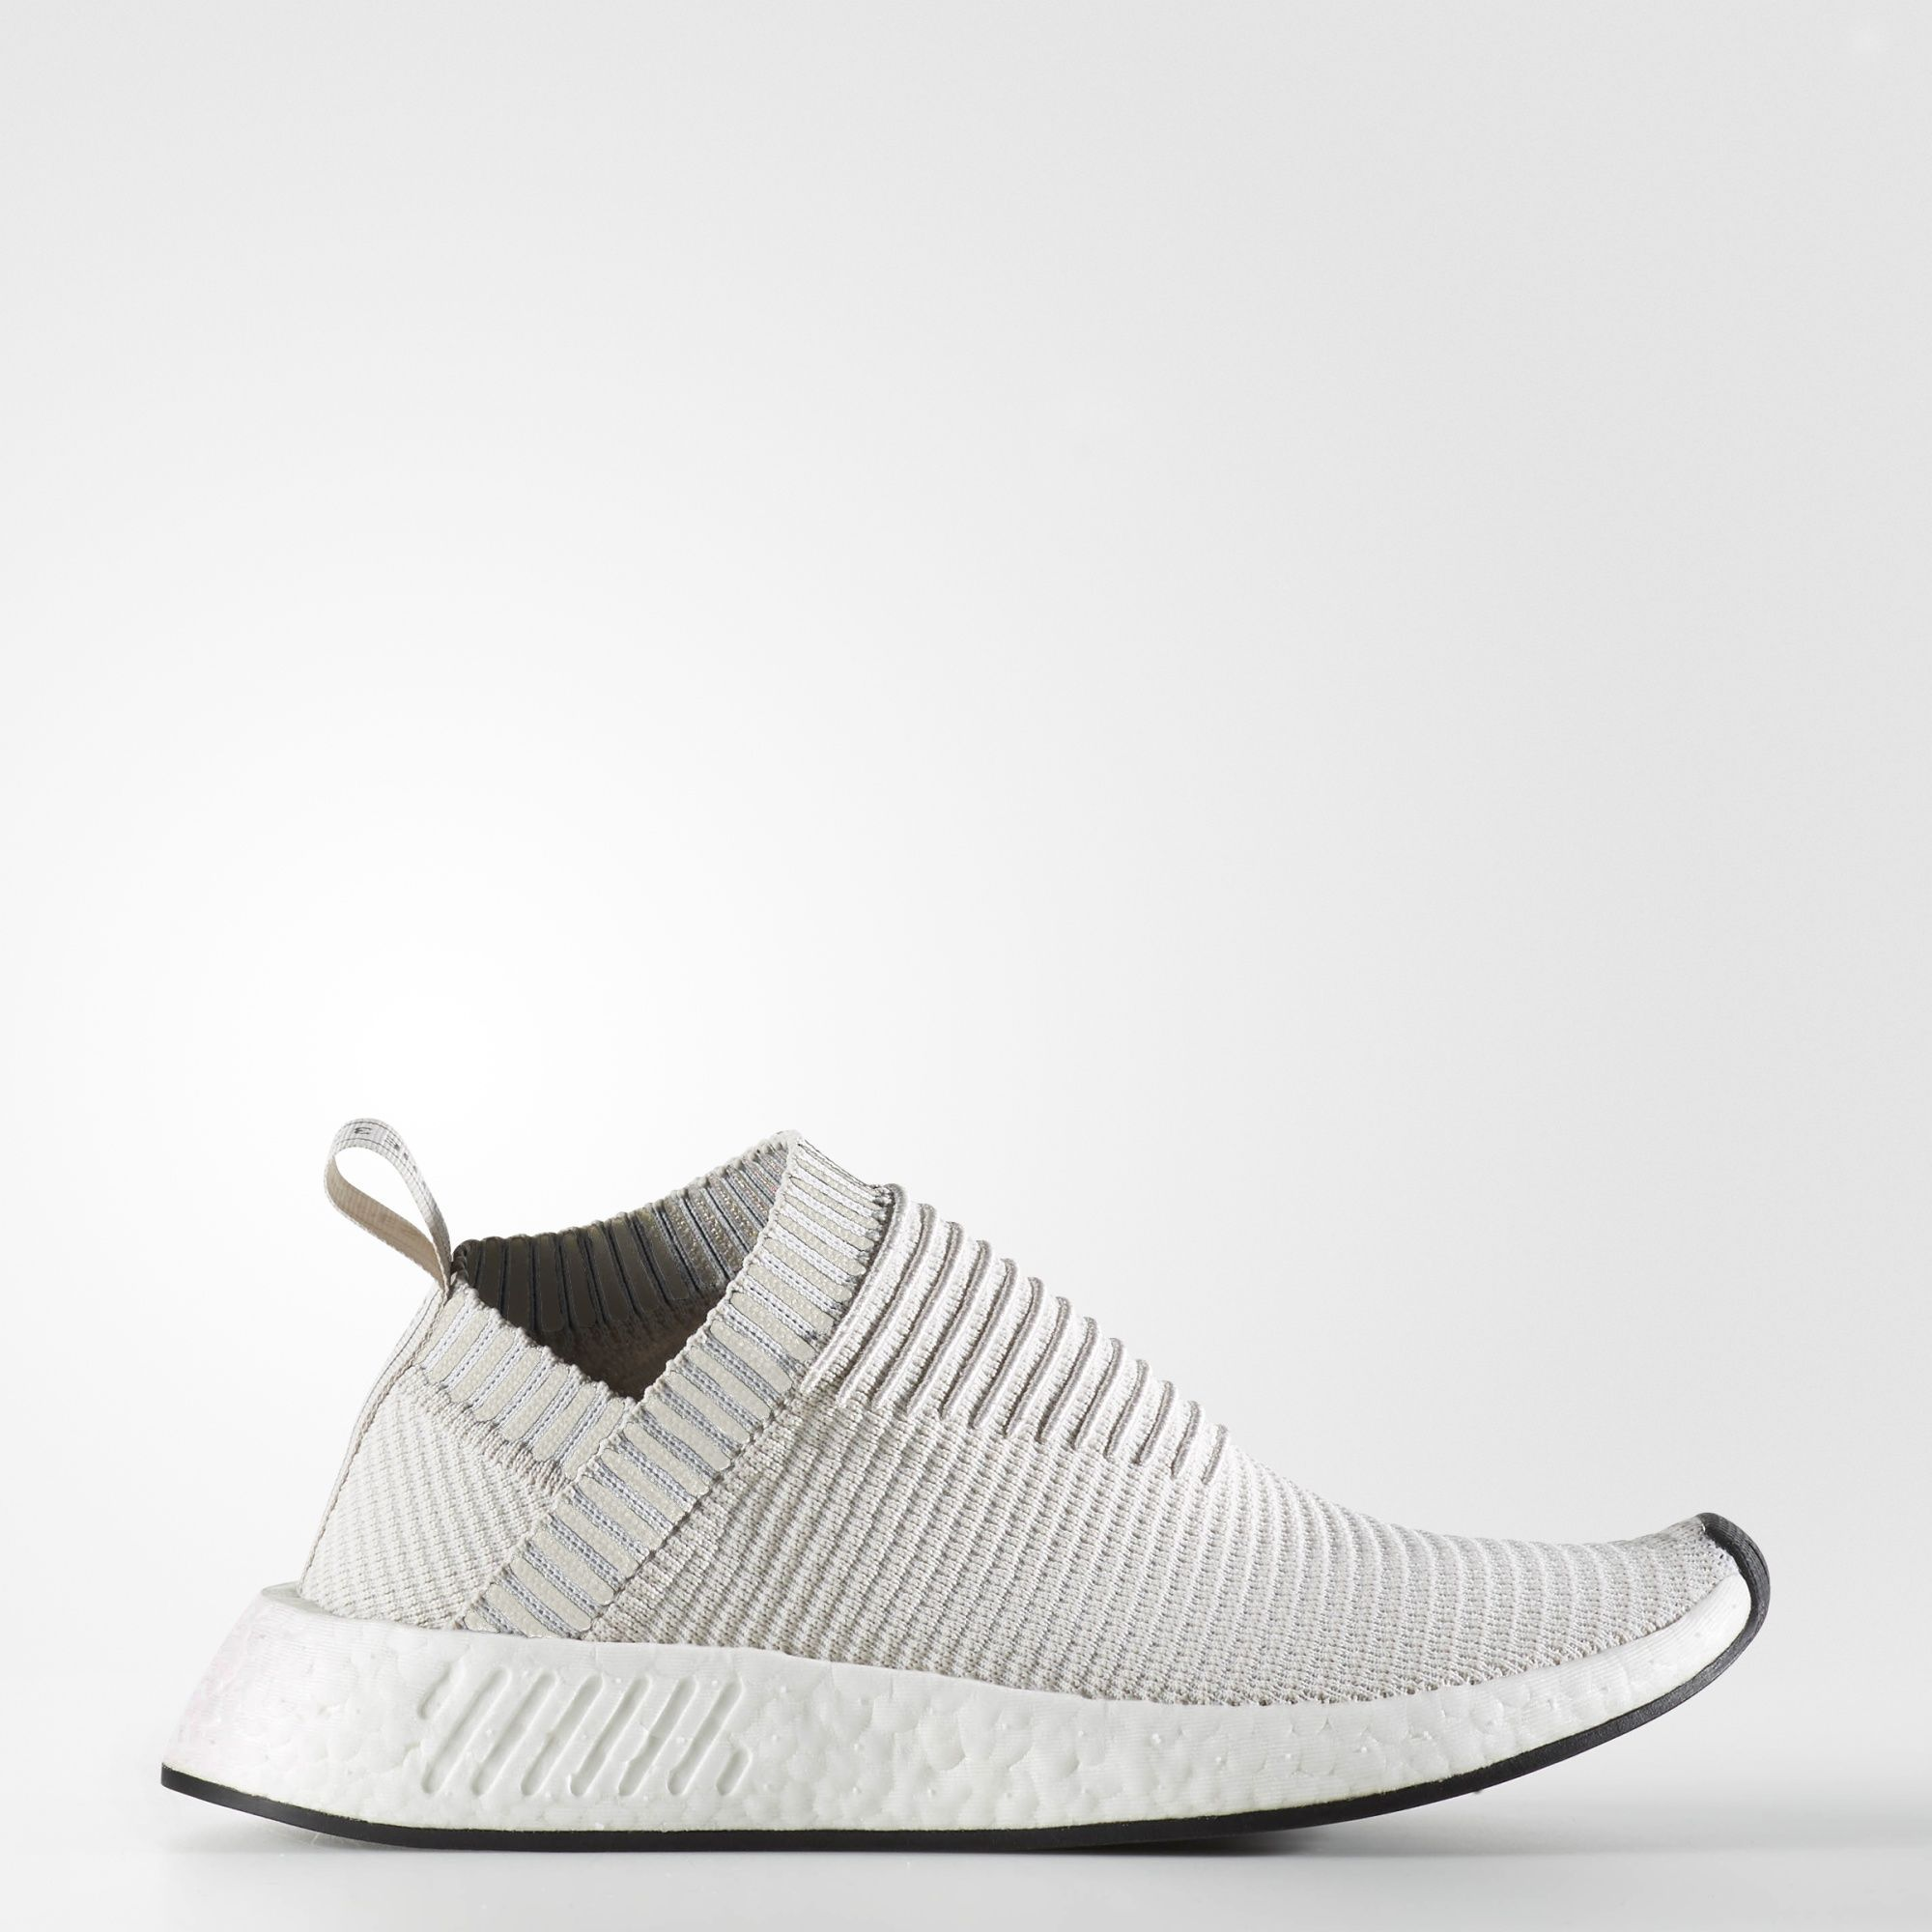 Adidas shoes nmd, Shoes, Adidas